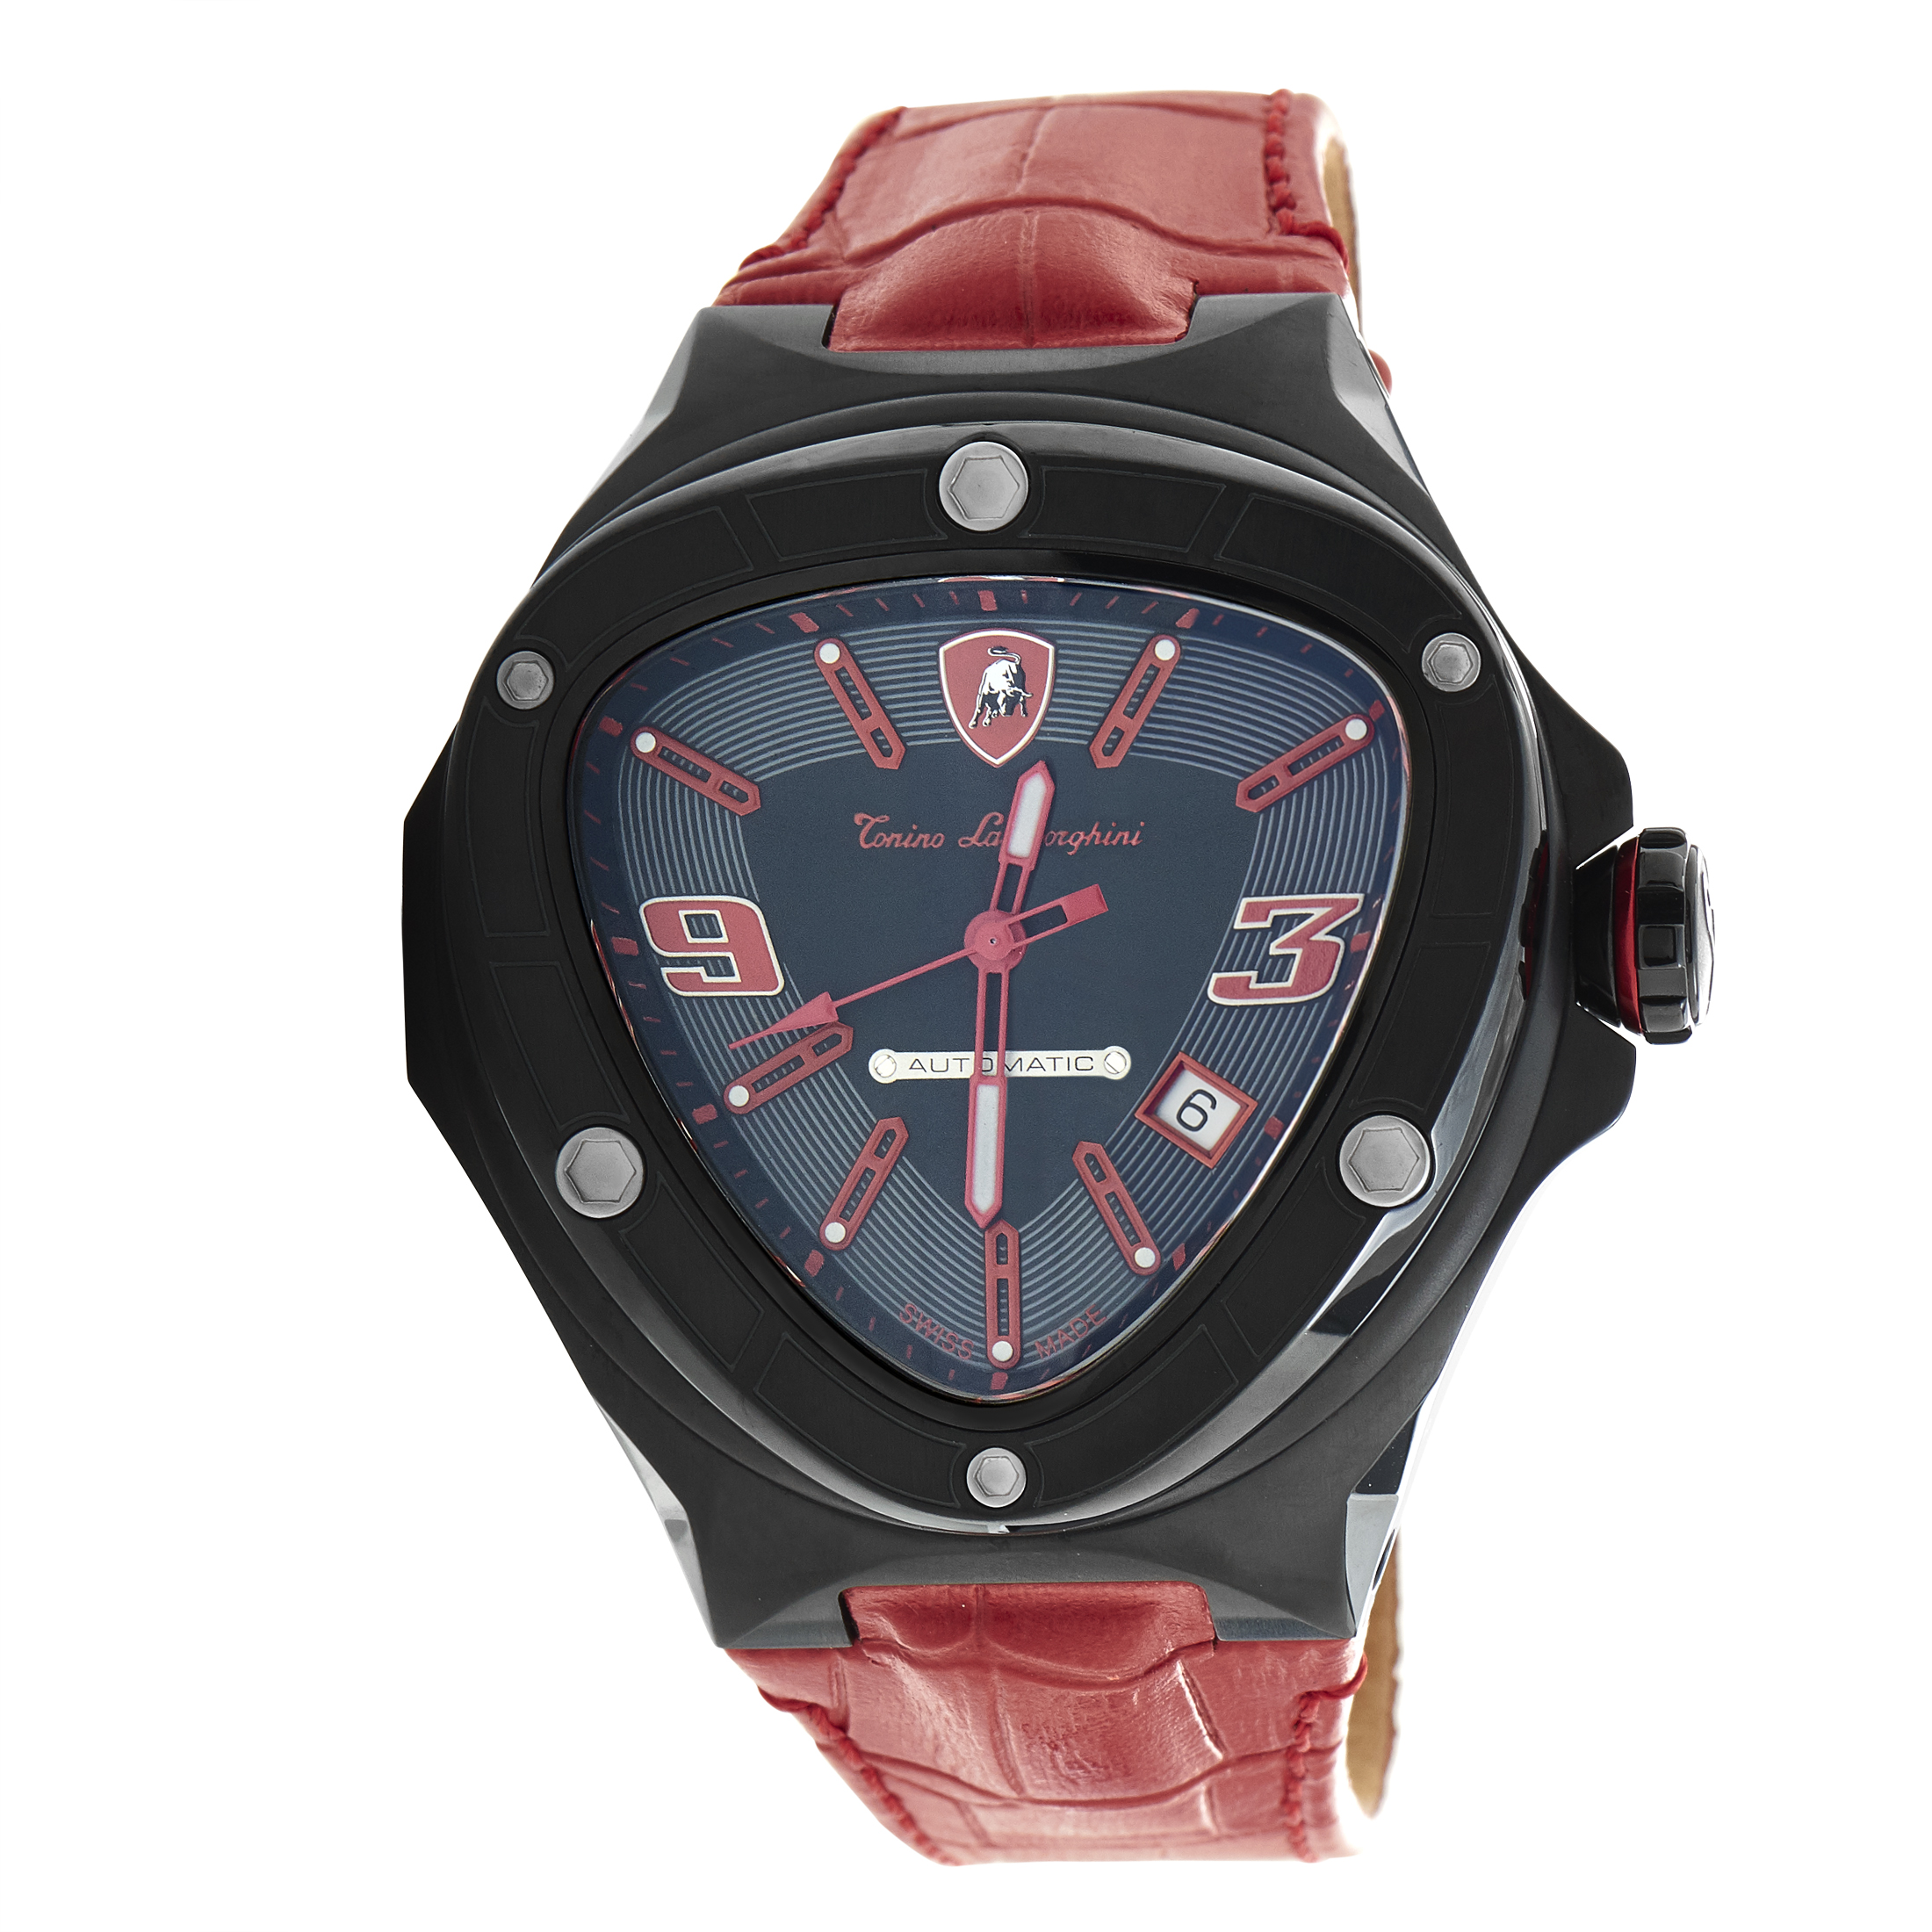 Men's Spyder Quartz Watch 8853